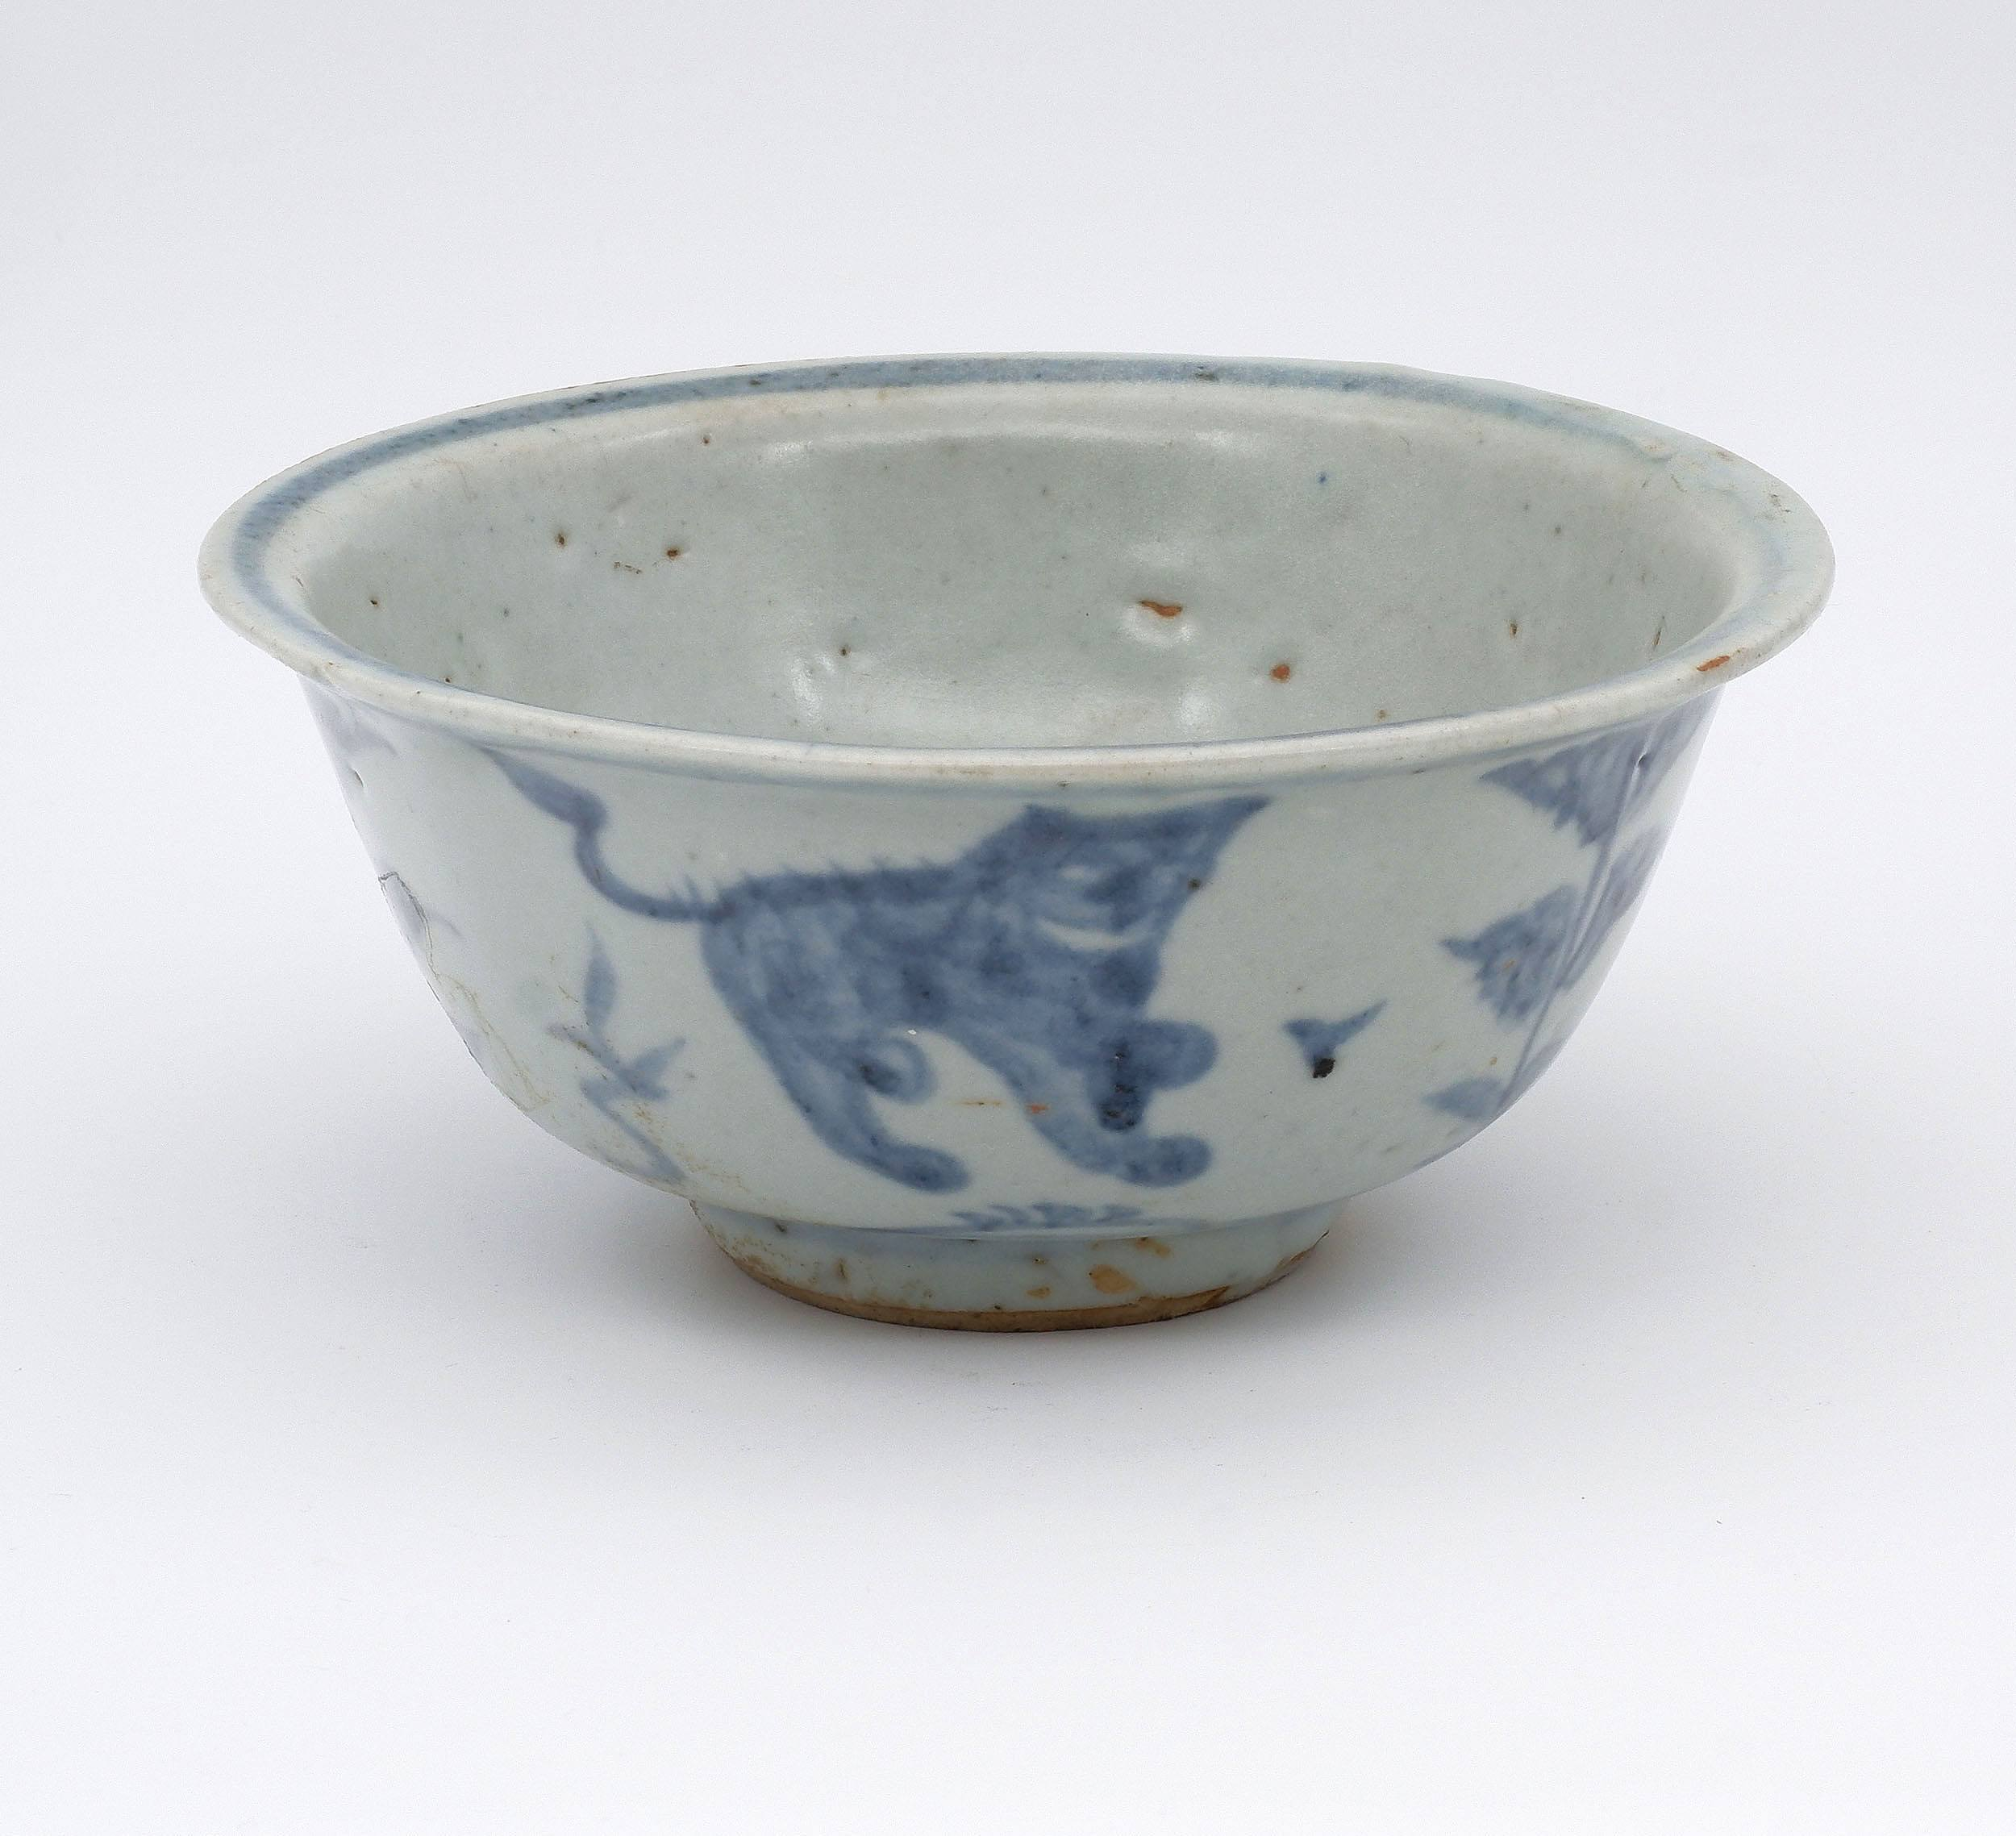 'Chinese Late Ming Blue and White Bowl Decorated with Two Lions, 16th Century'